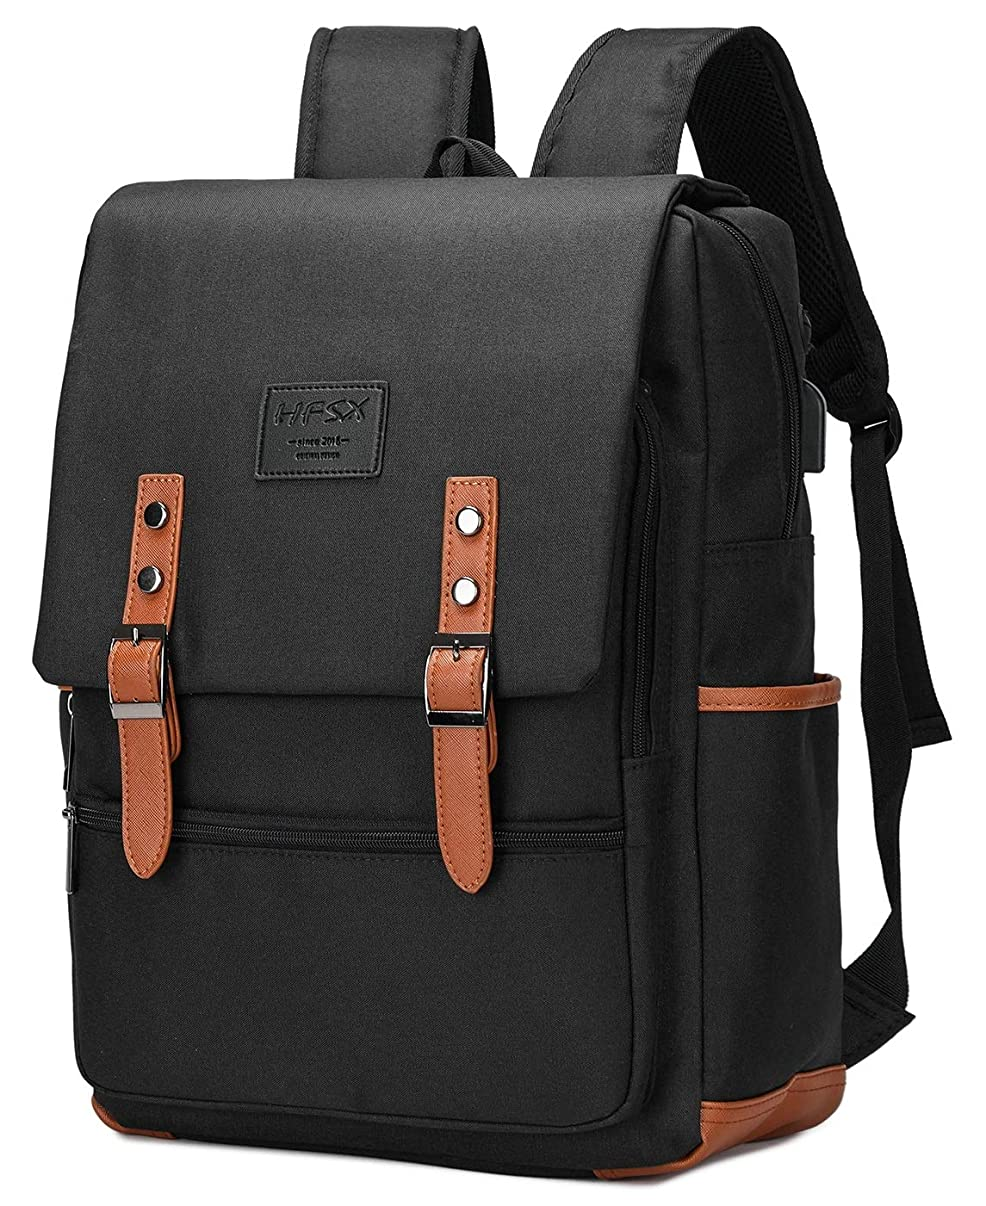 HFSX Vintage Laptop Backpack for Women Men School College Backpack with USB Charging Port Fashion Backpack Fits 15.6 inch Notebook Black